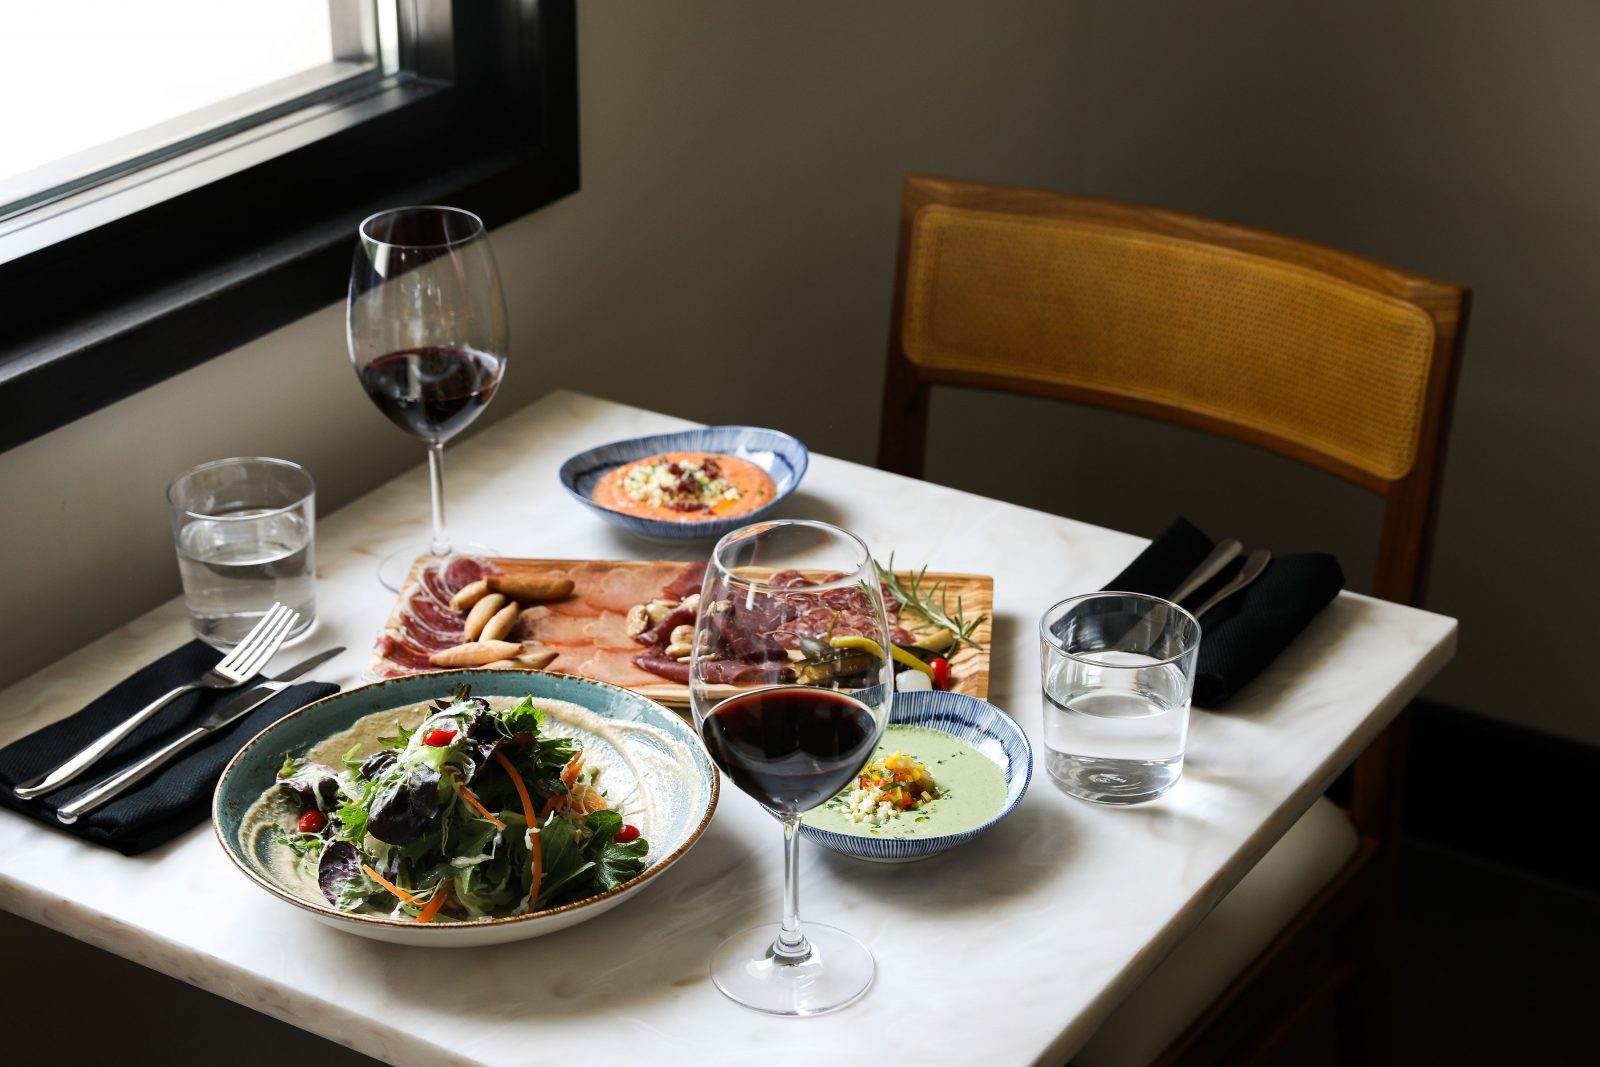 Pickled Piparra Salmorejo, Almendra Salad, Charcuterie Plate with spanish meats red wine simple minimalist restaurant white marble table wooden chairs